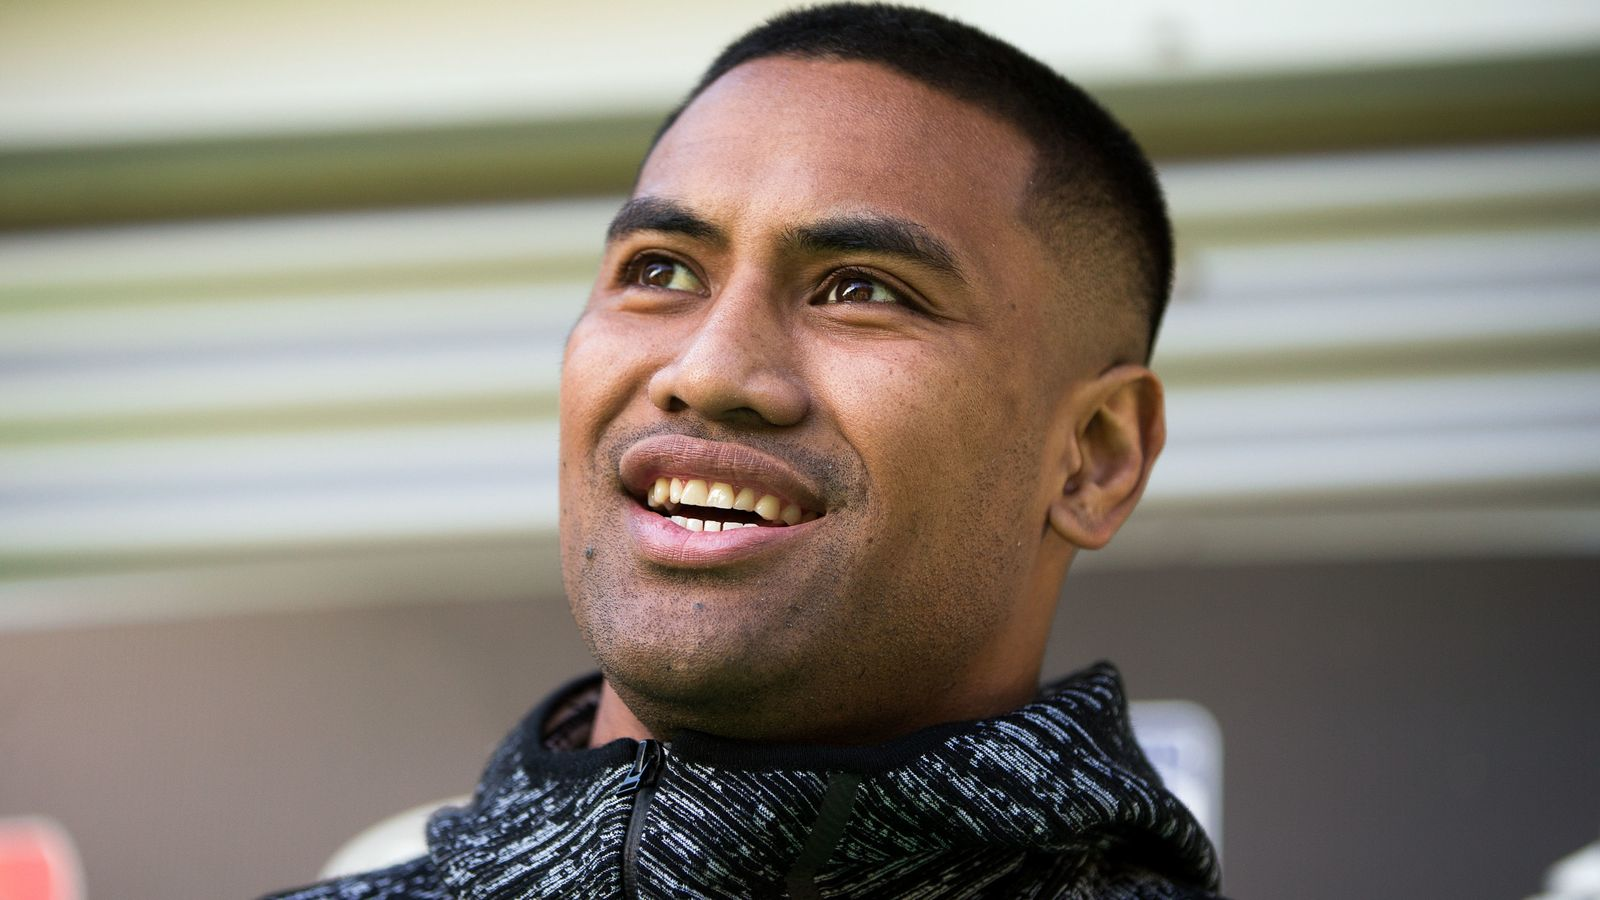 Julian Savea leaves Toulon in search of new contract after French season cancelled